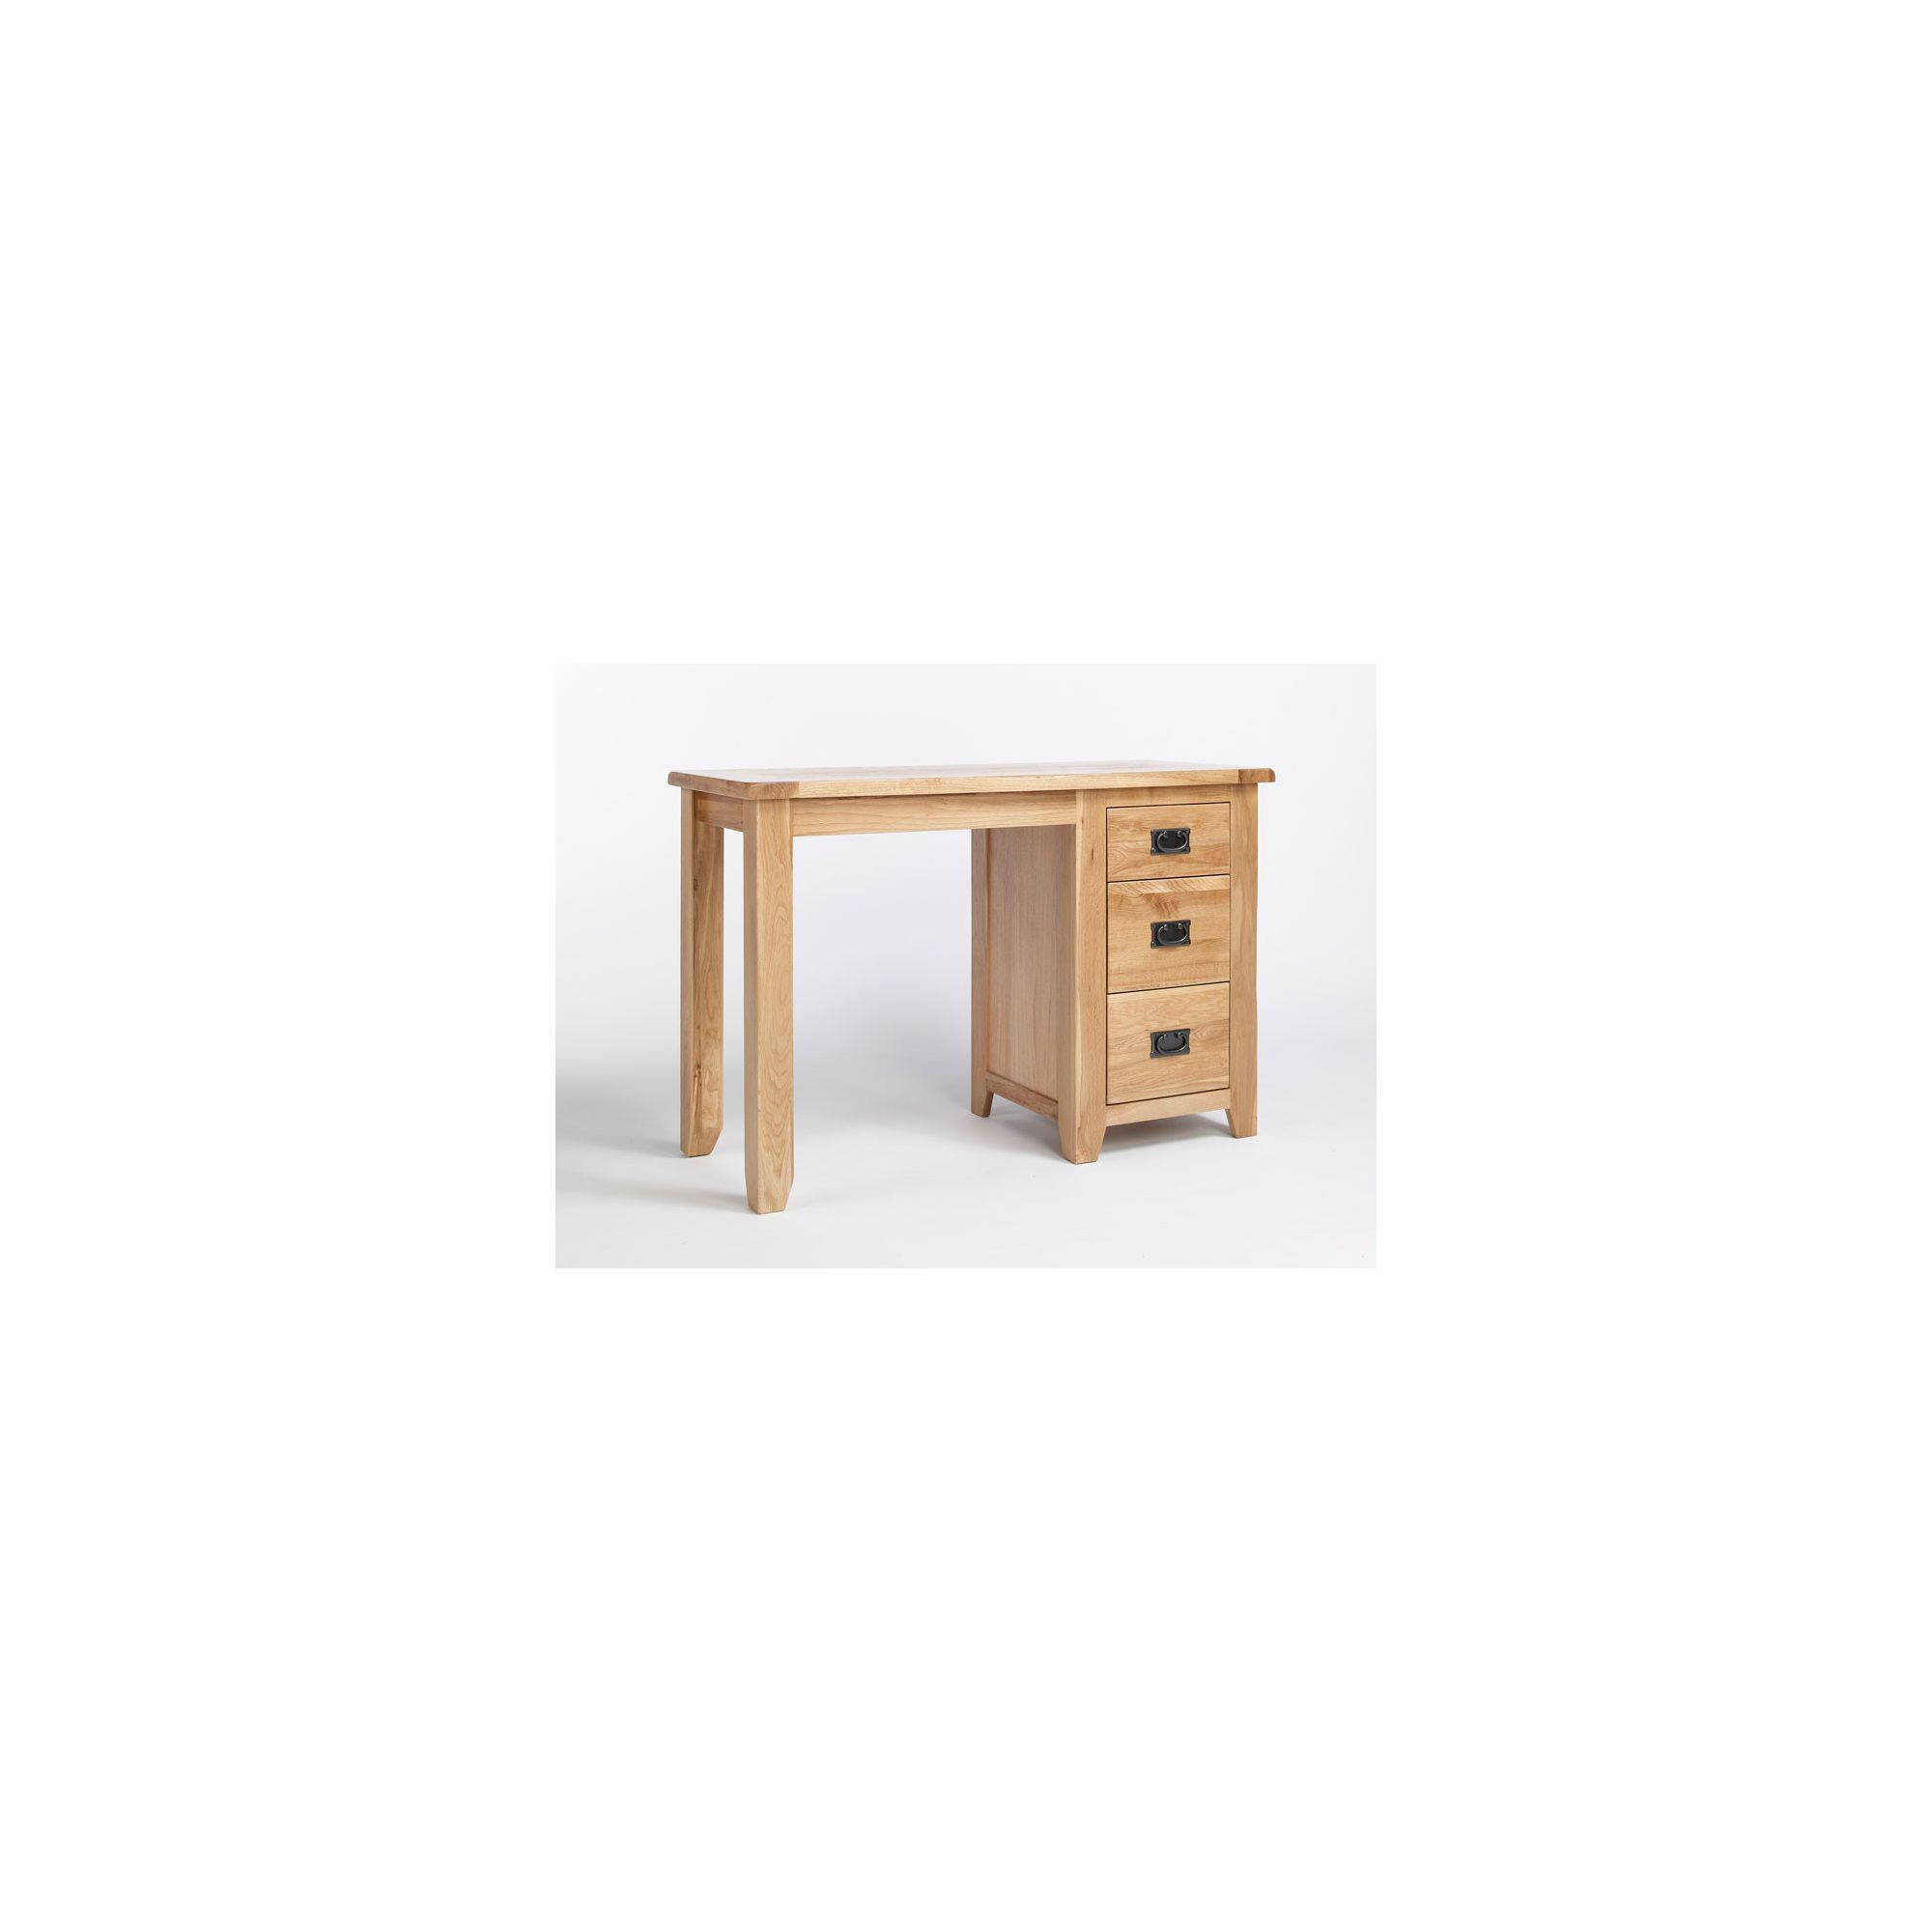 Ametis Westbury Reclaimed Oak Dressing Table at Tesco Direct